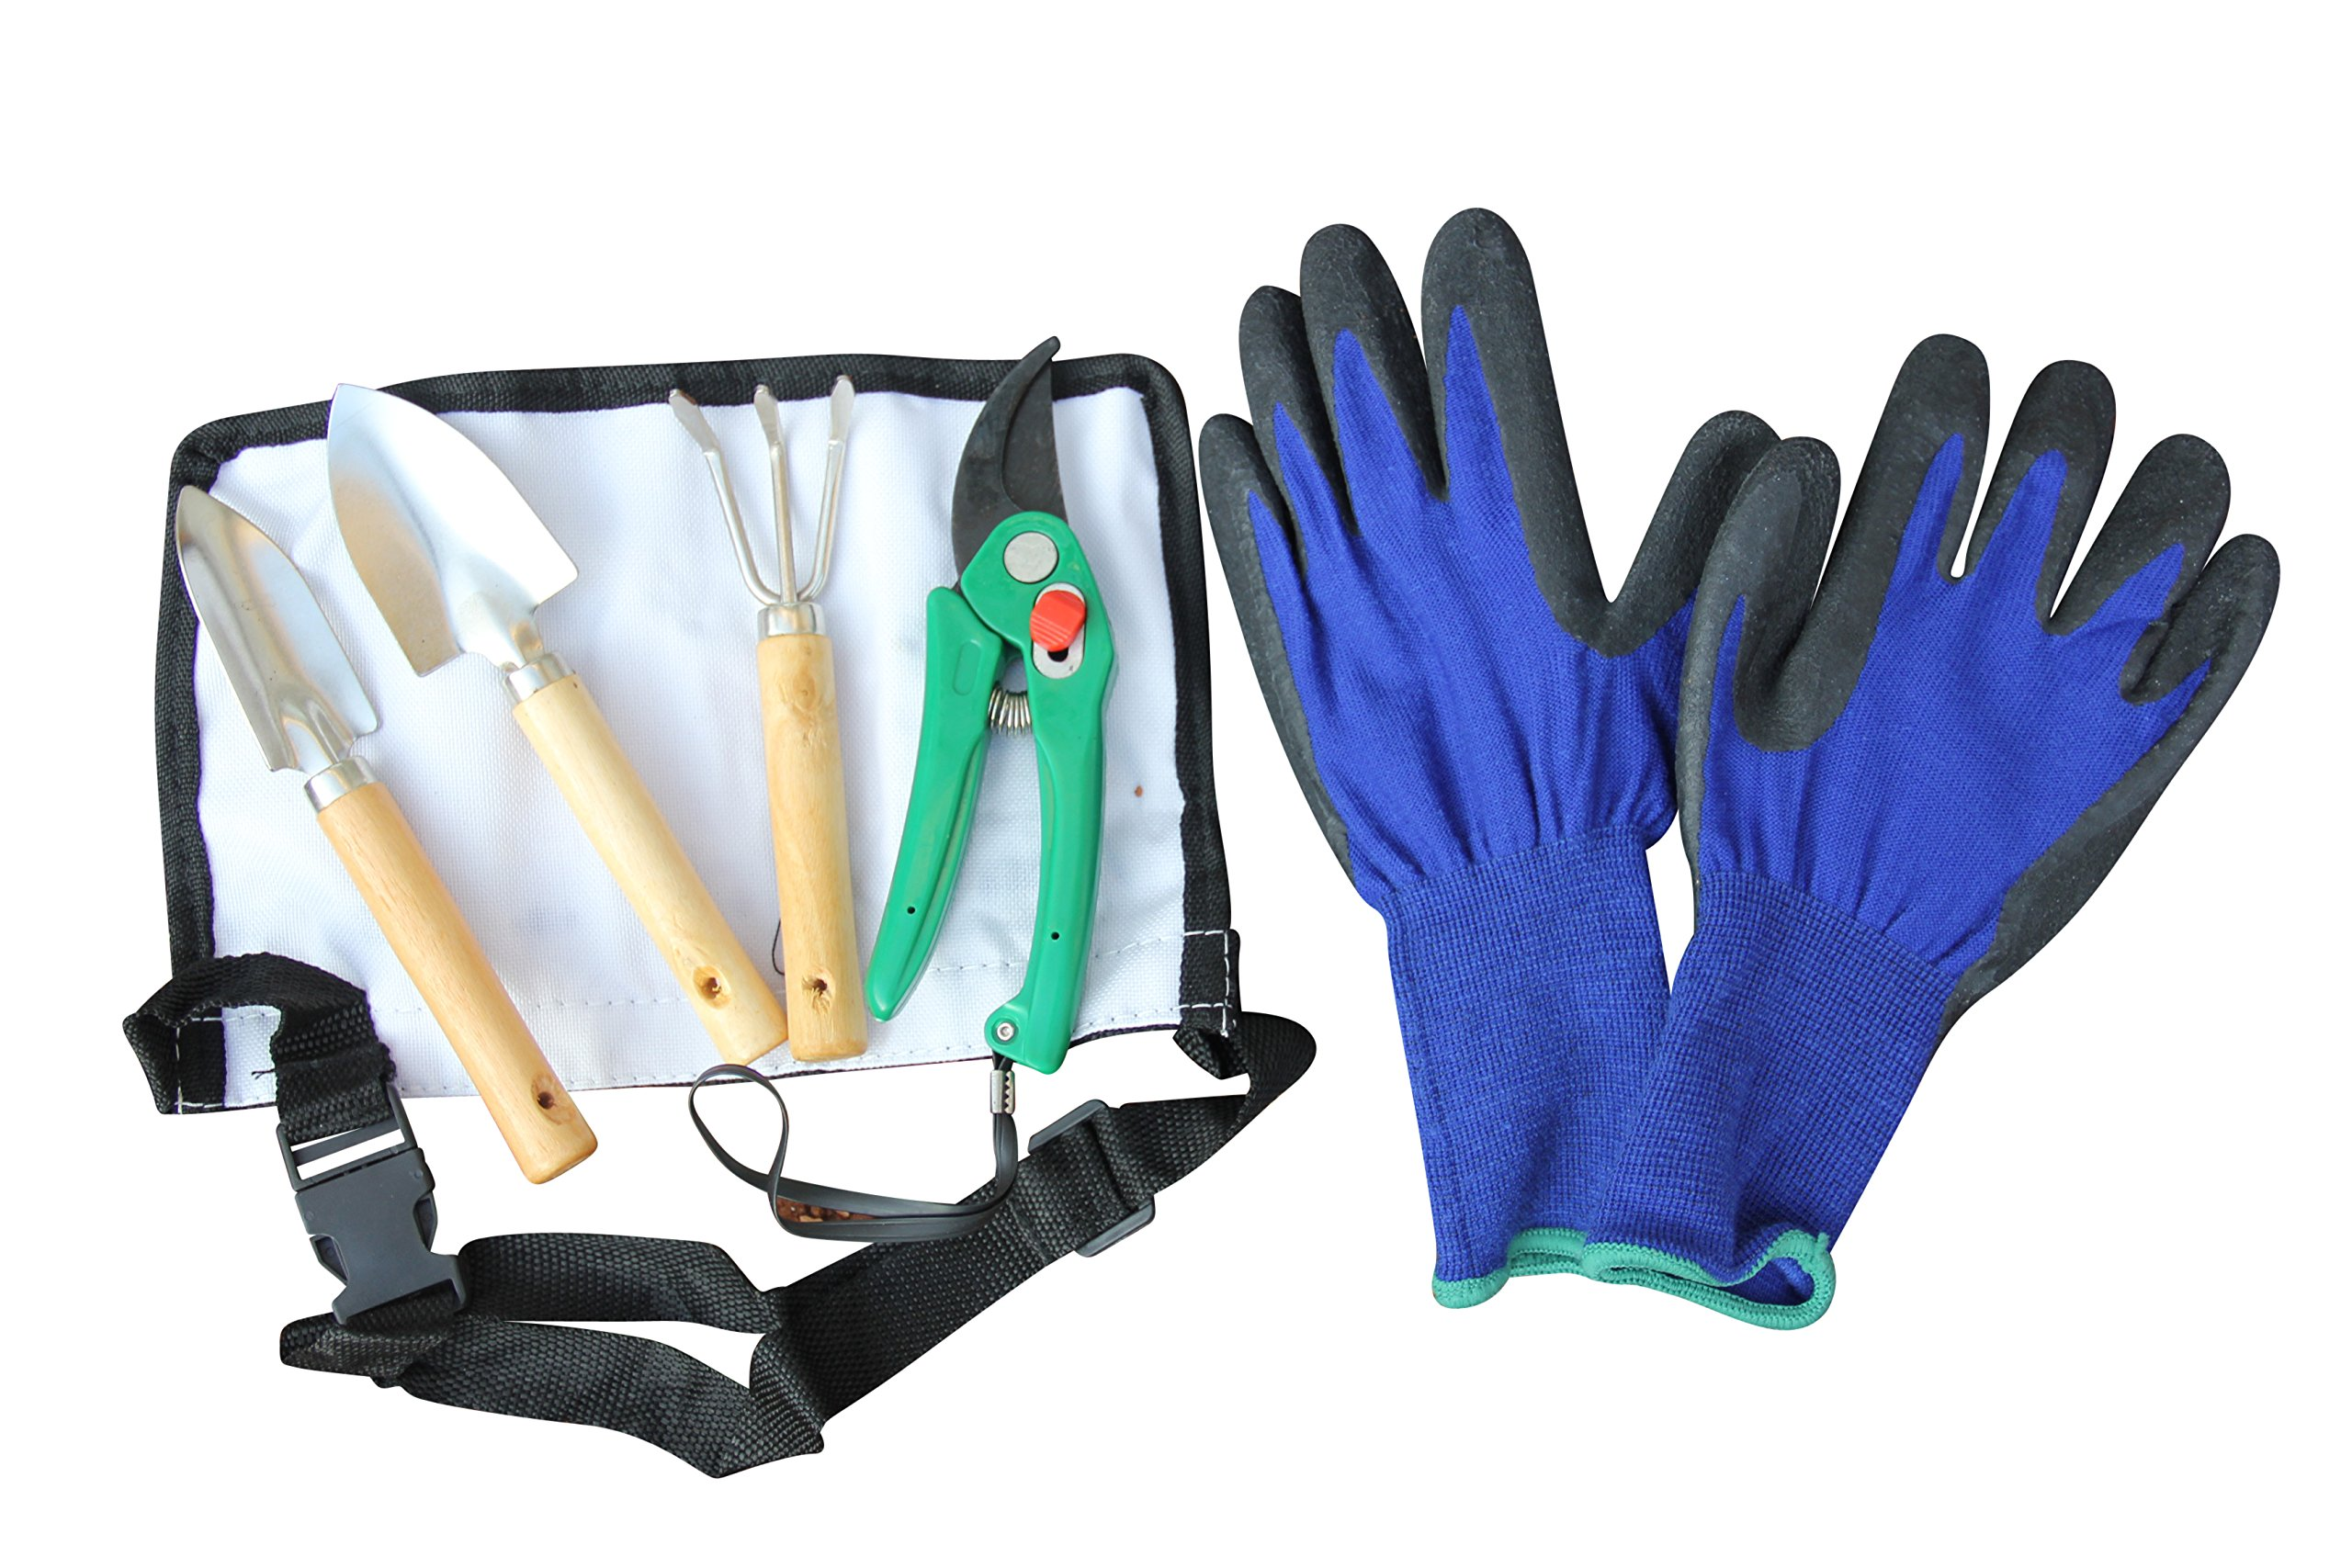 Women's Durable Long Cuff Gardening Gloves Plus A 4 Piece Tool Set For Transplanting Seedlings Or Bonsai Work - Package for Lady Gardeners